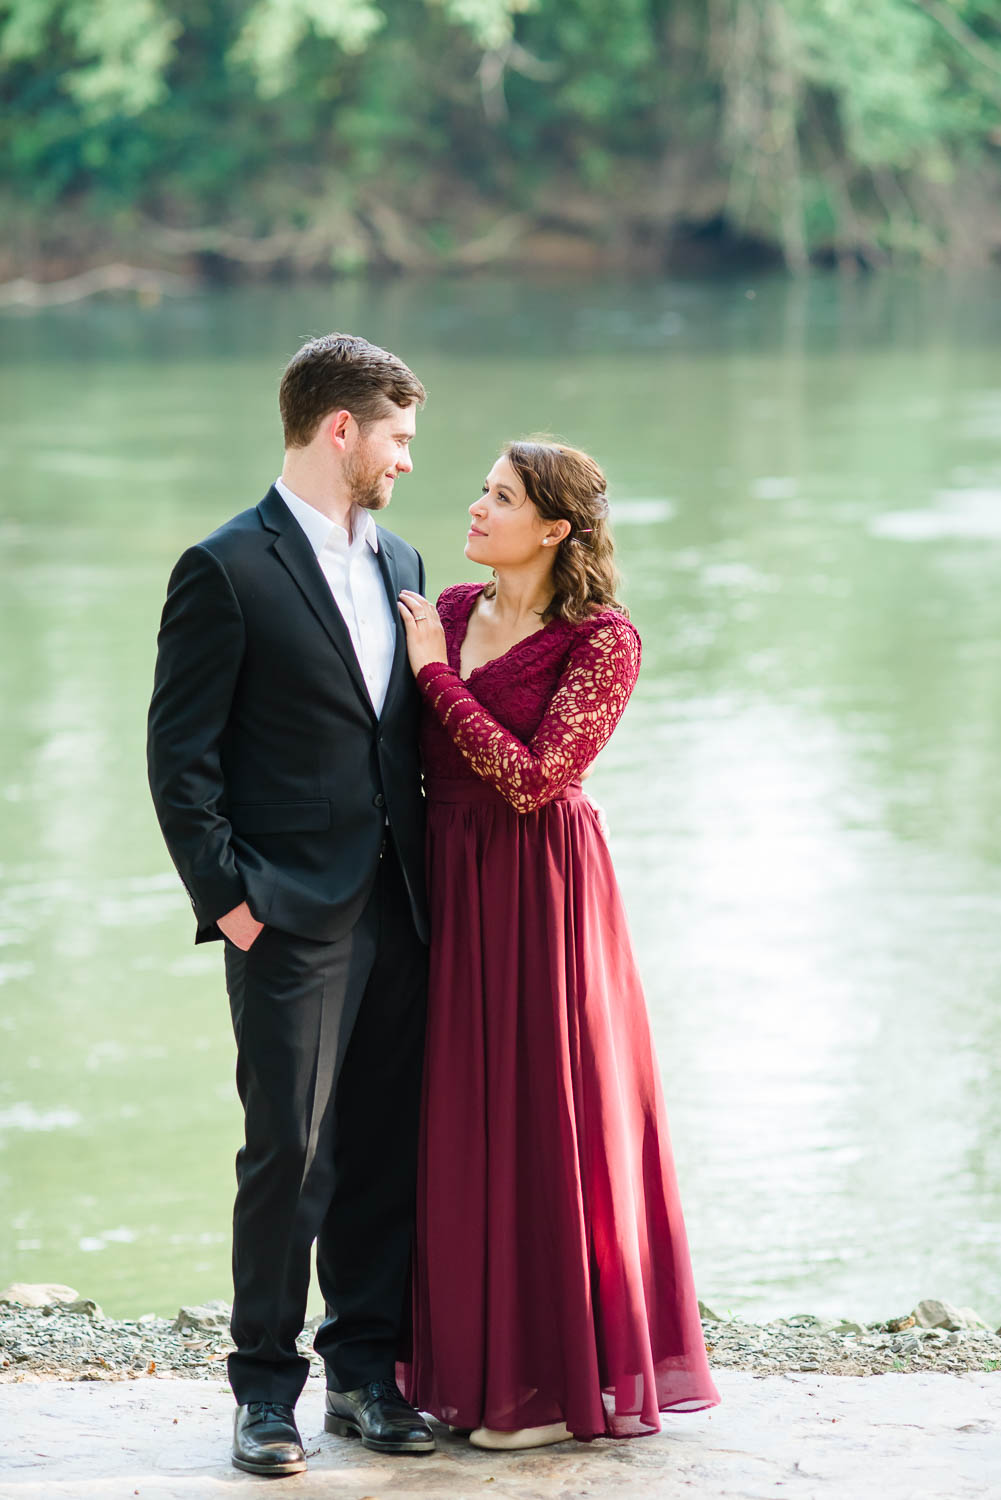 guy wearing a blacksuit and a girl wearing a maroon dress with lace sleives